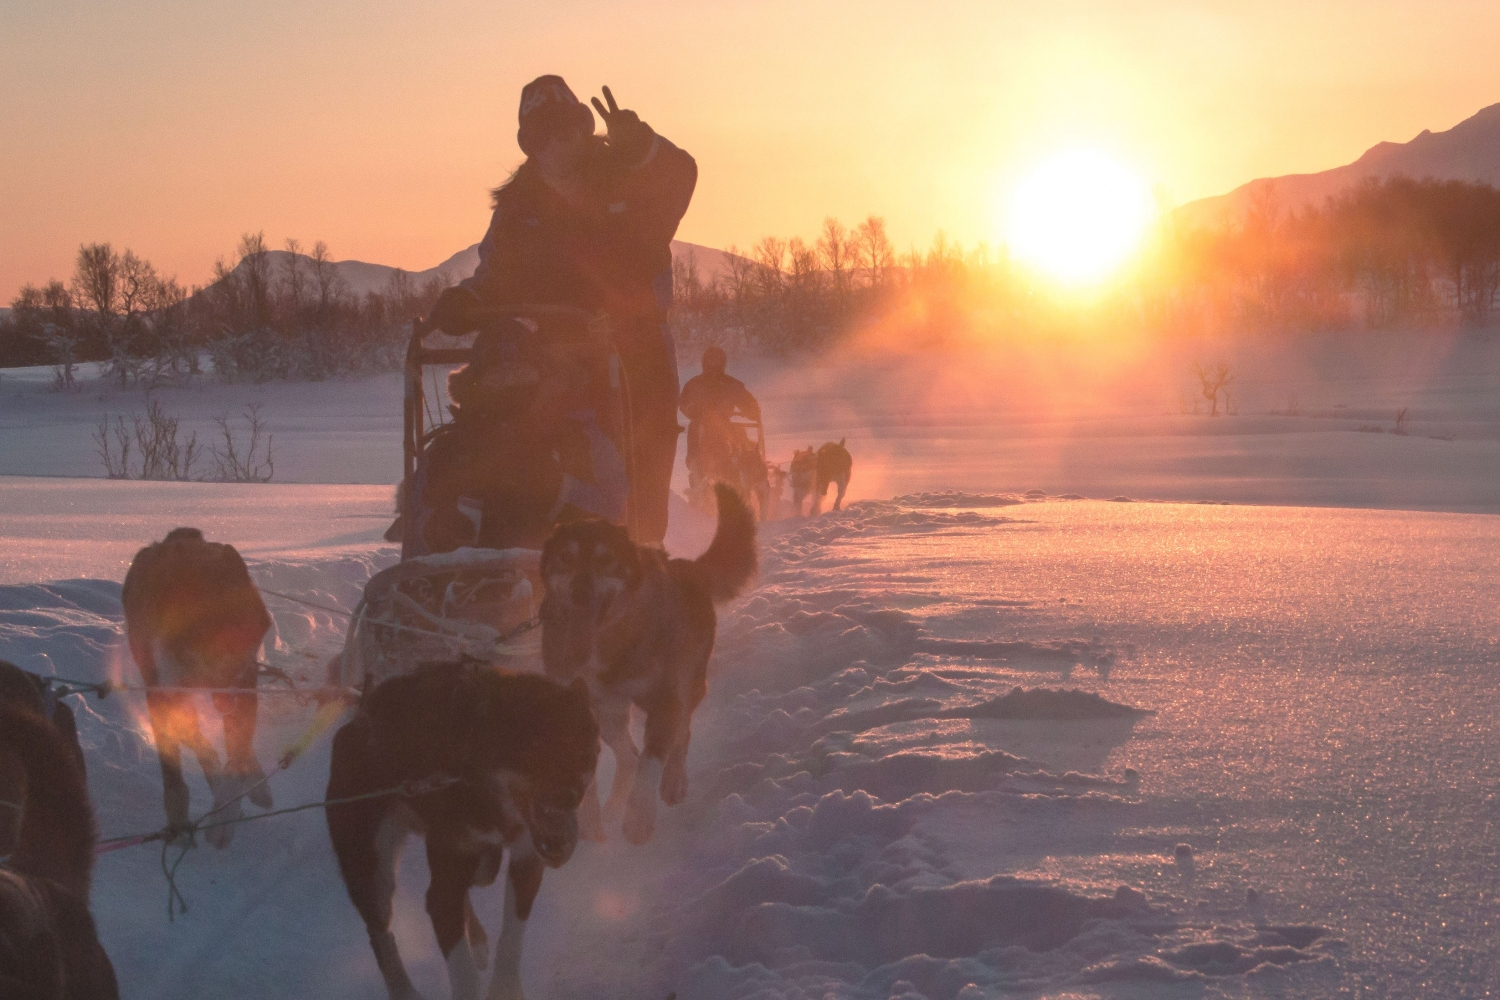 Dog sledding with bright orange sun in the backgrounbd